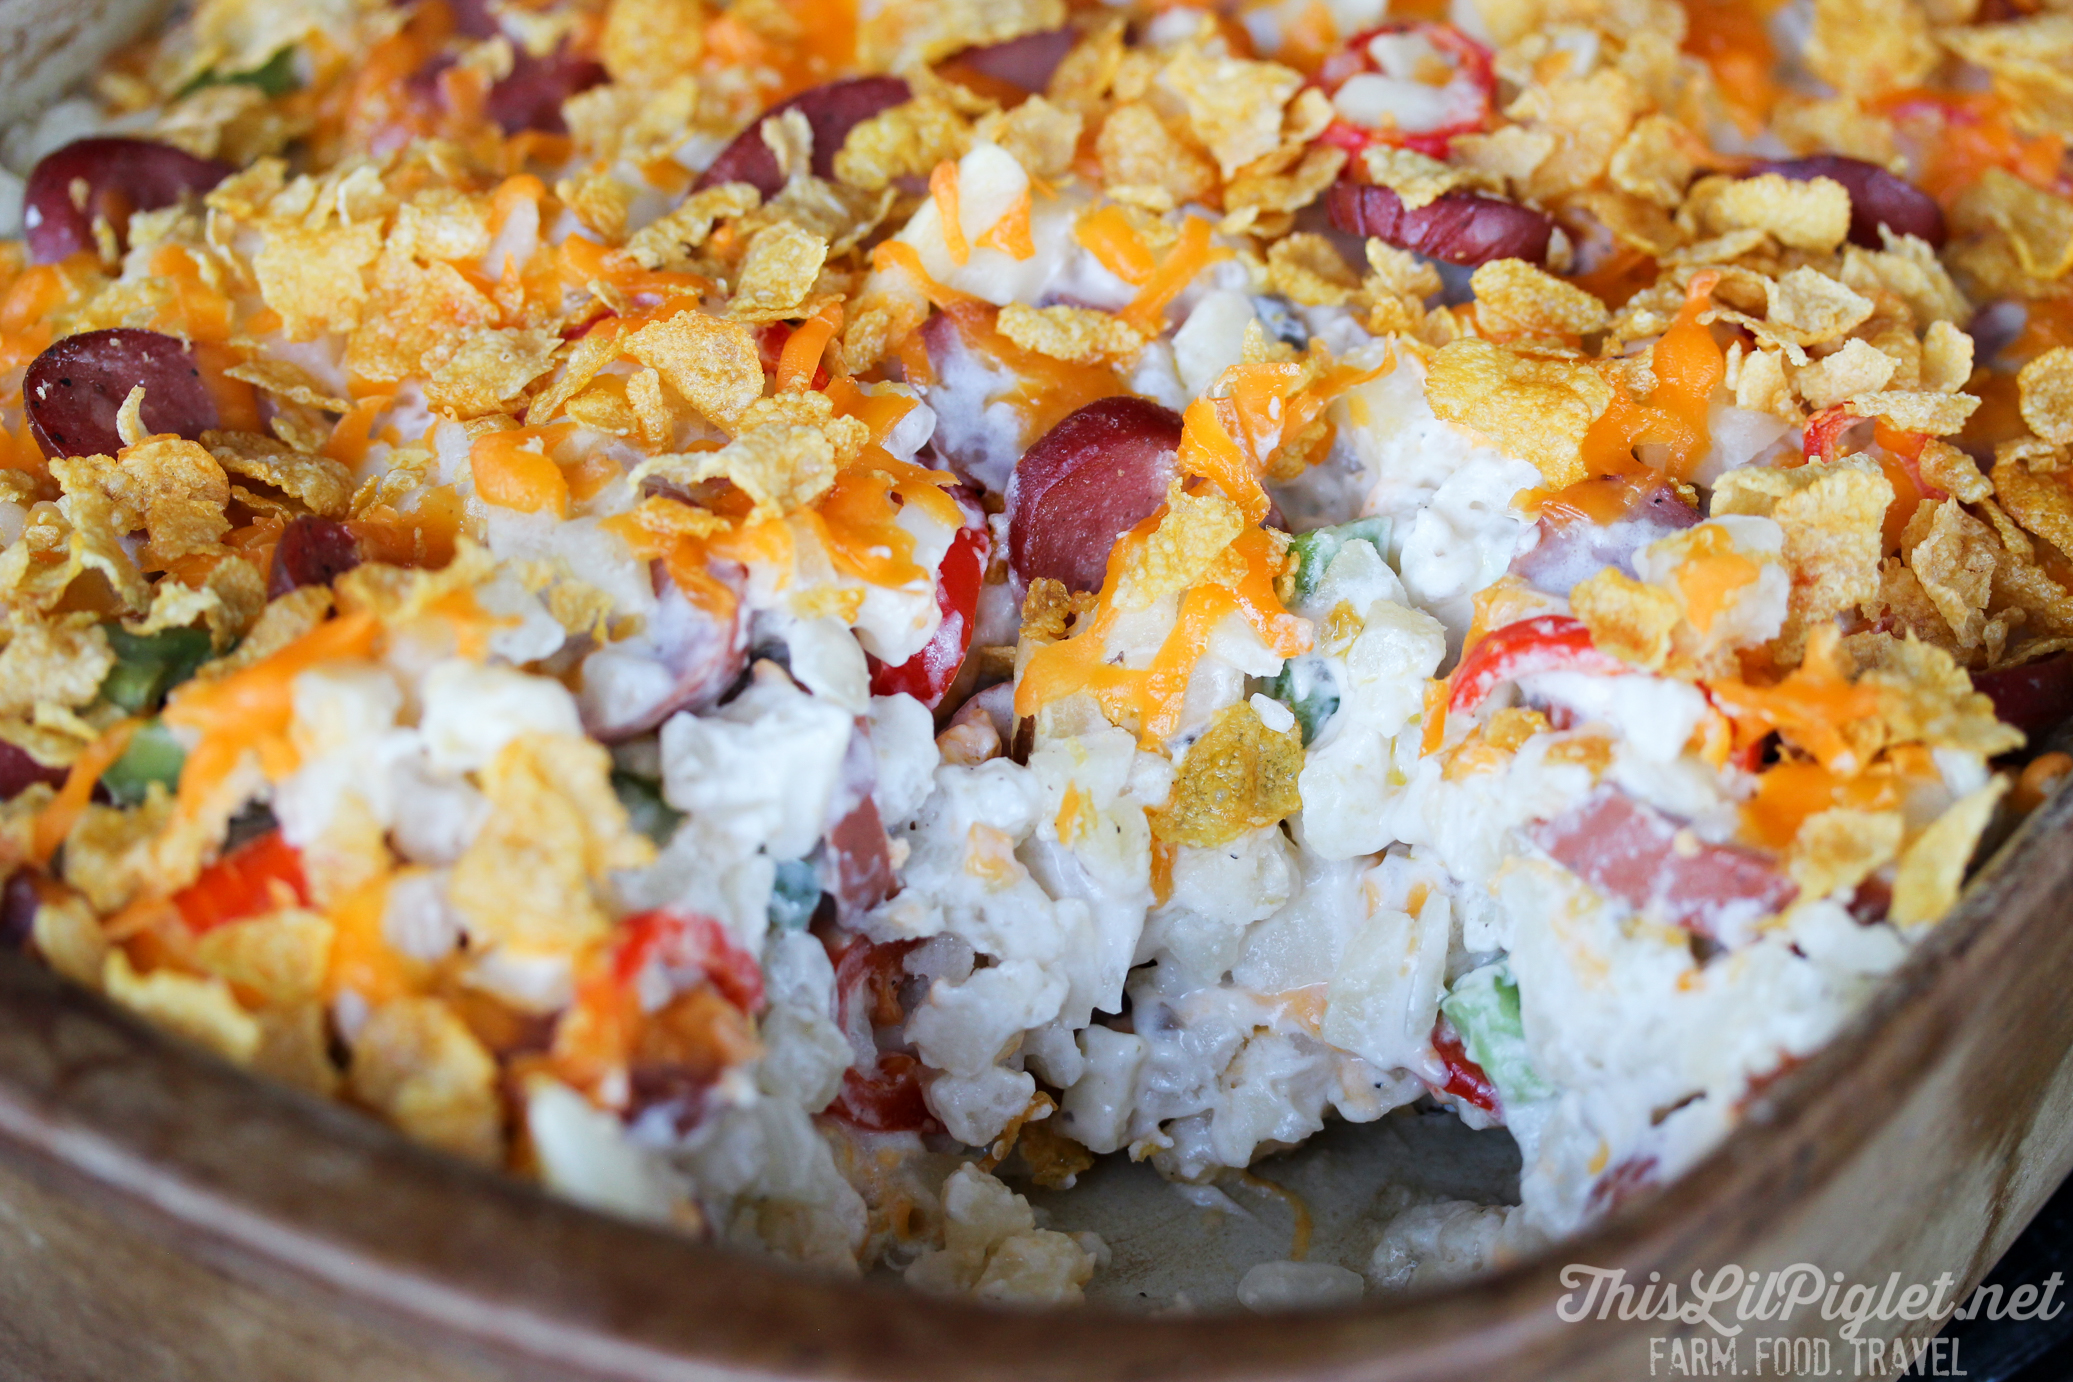 Chicken Sausage Lazy Breakfast Casserole with Hashbrowns // thislilpiglet.net